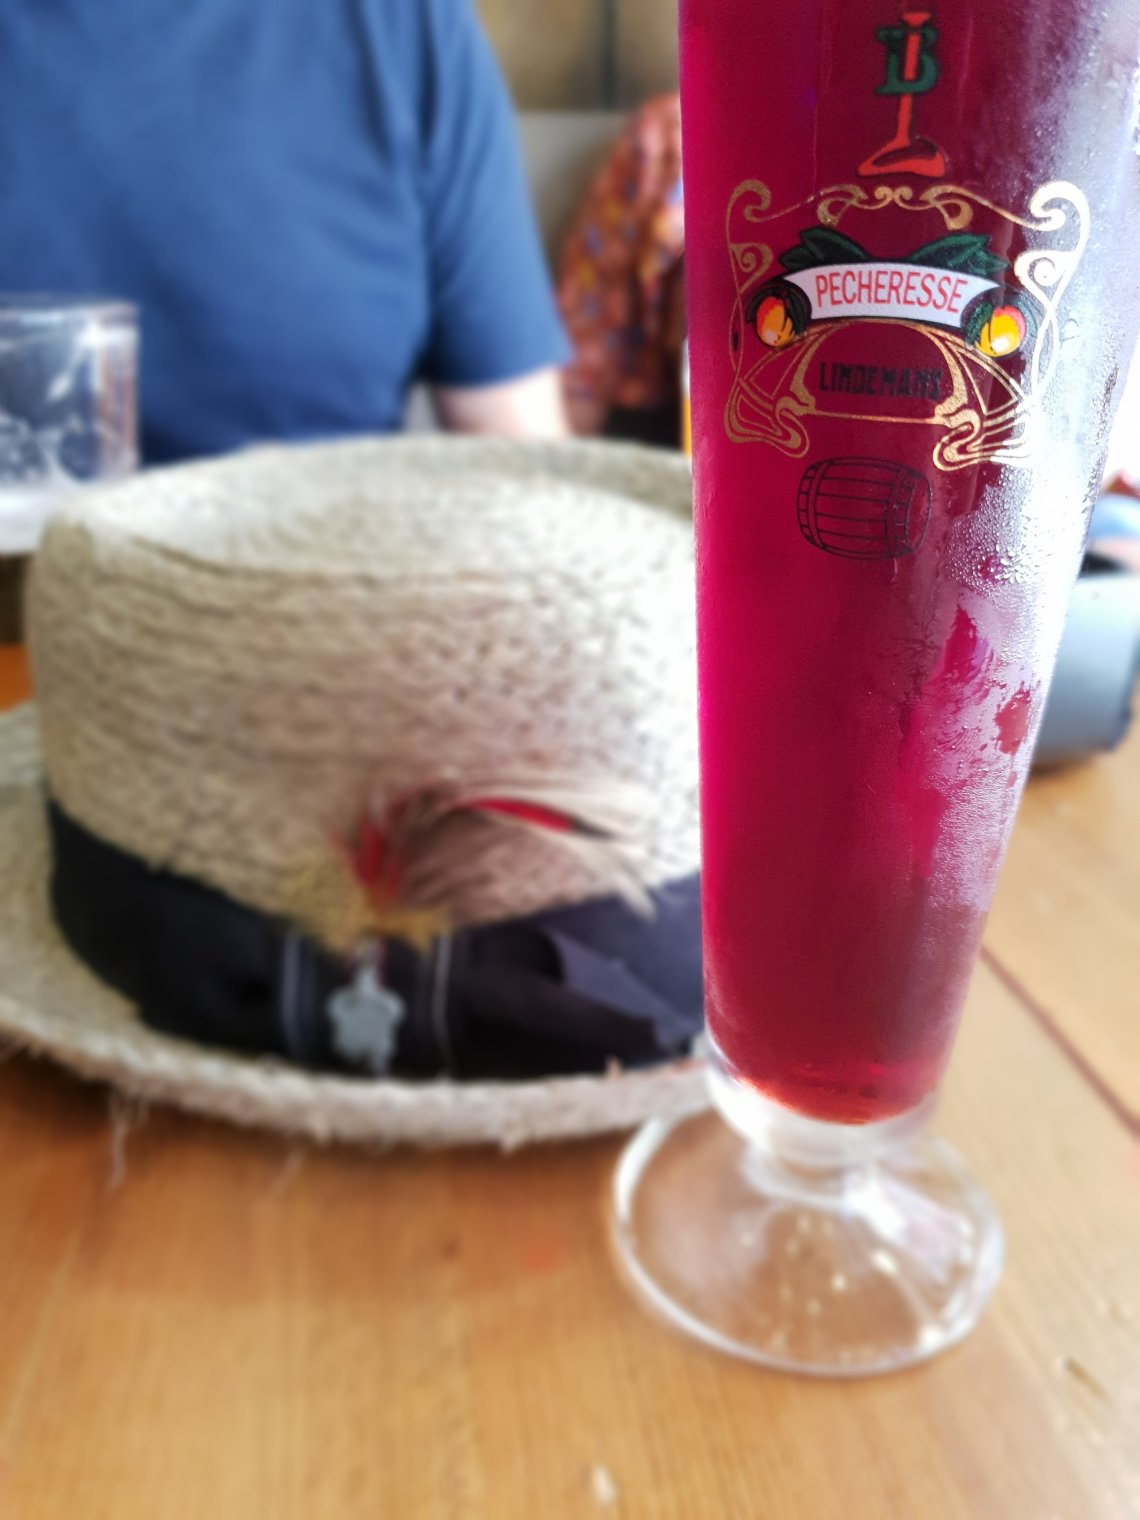 Raspberry beer and straw hat in Central Beers in Malaga. A Foodie's Guide to Malaga.